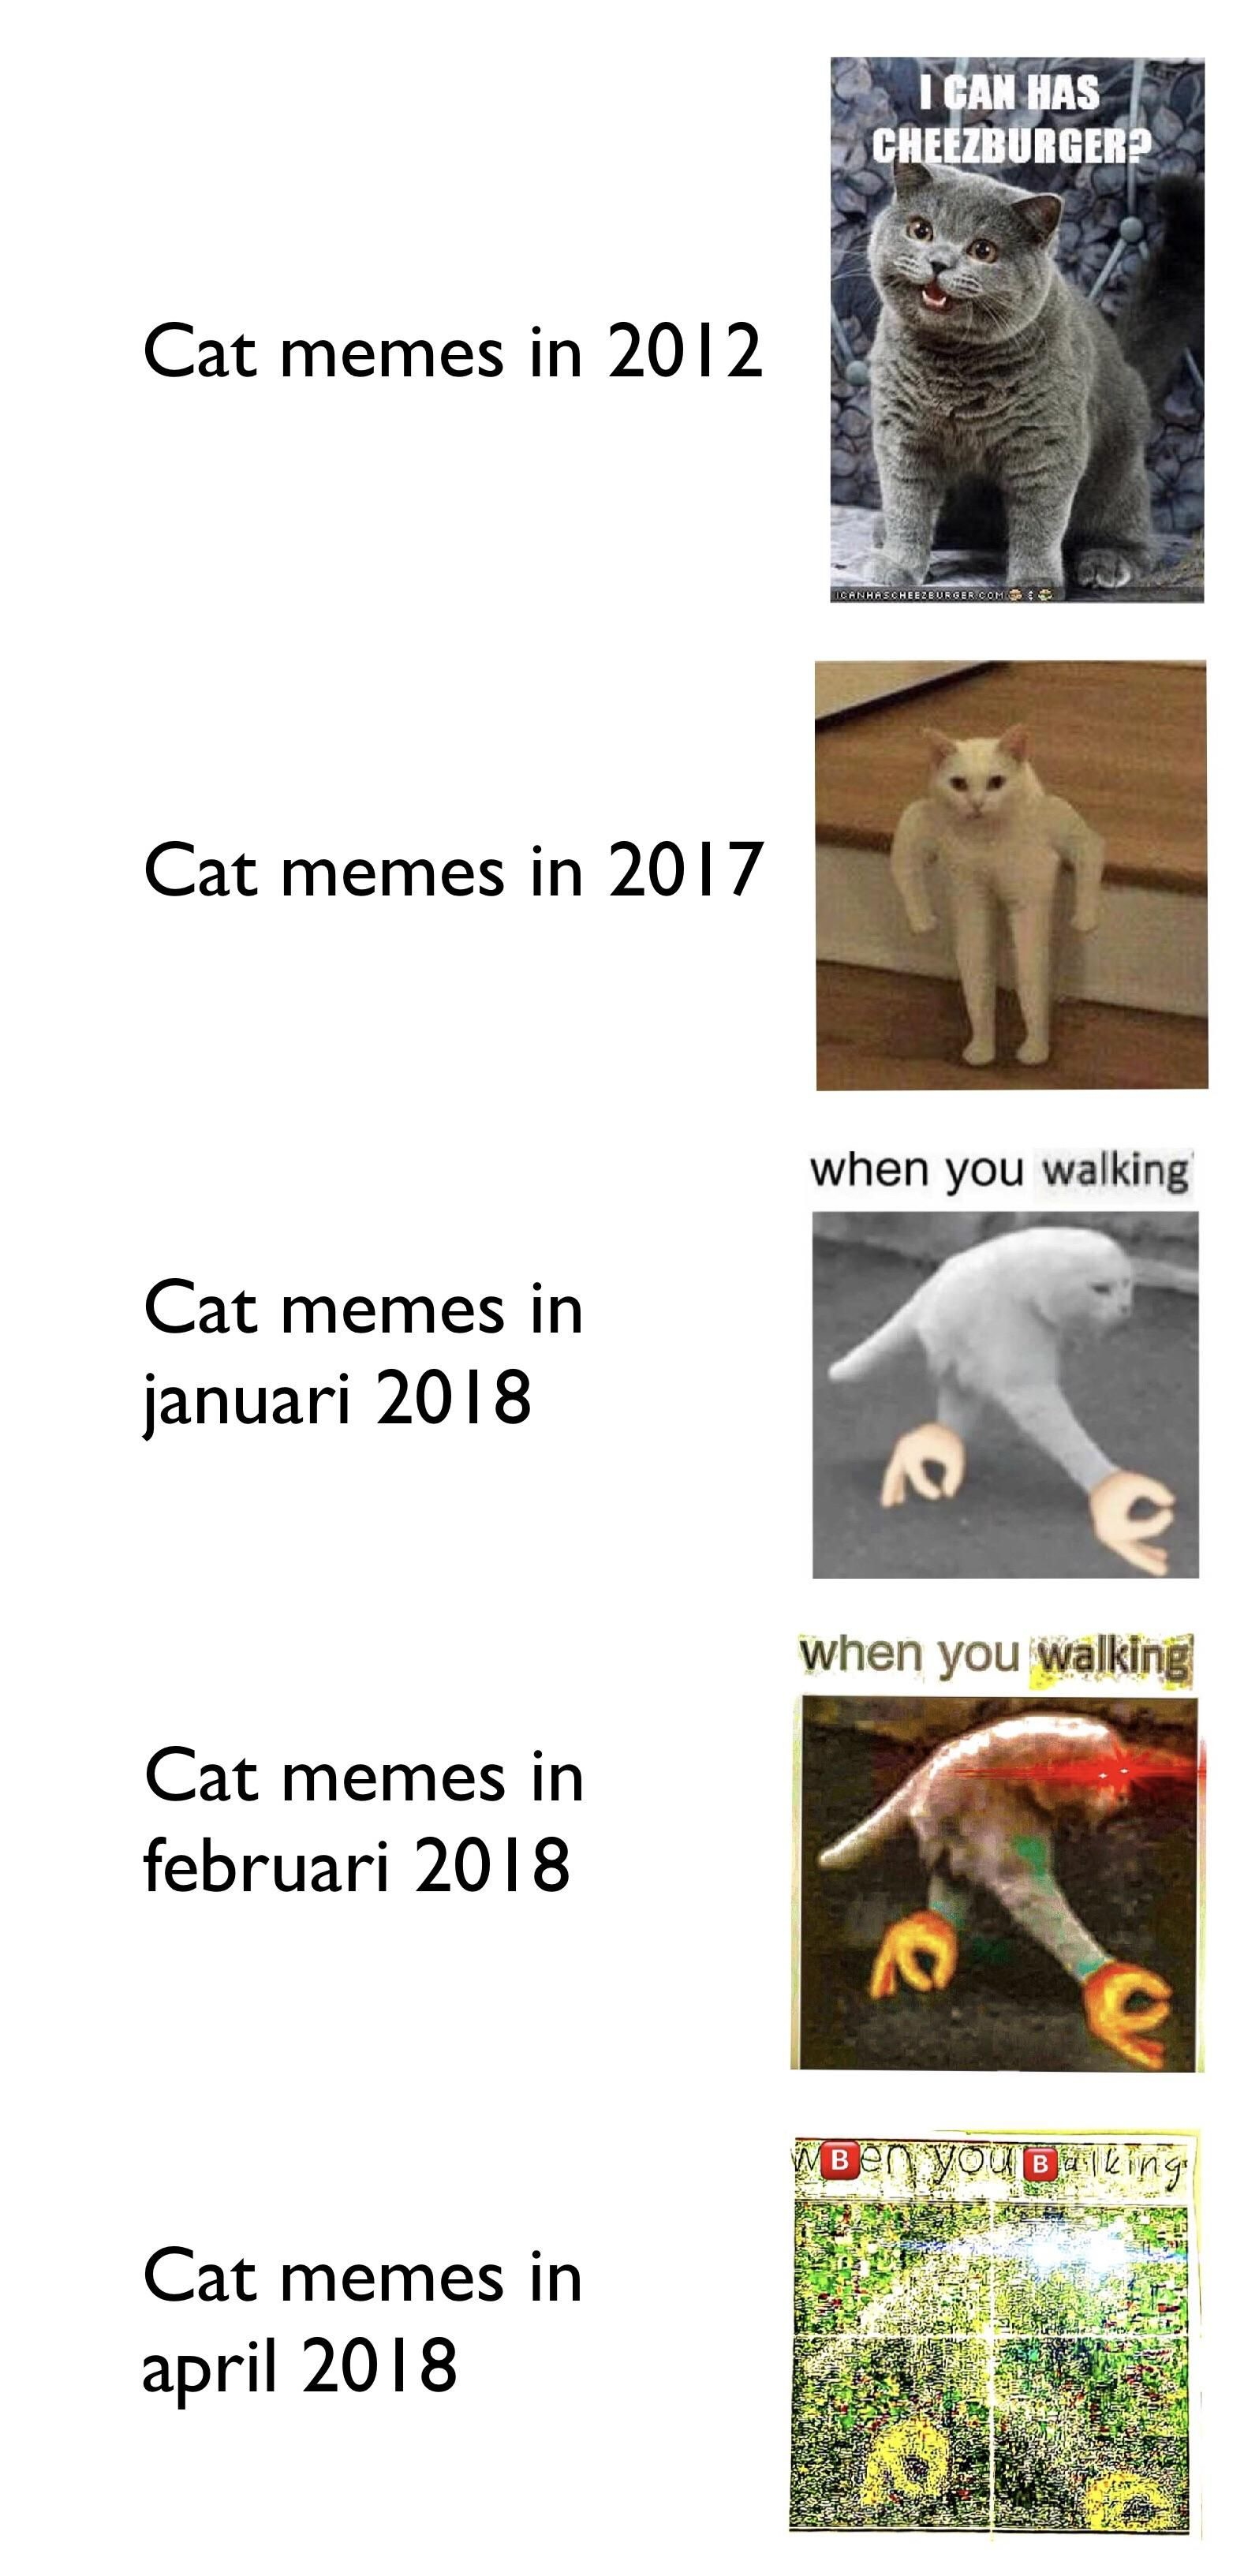 Can't wait for the cat memes in 2019